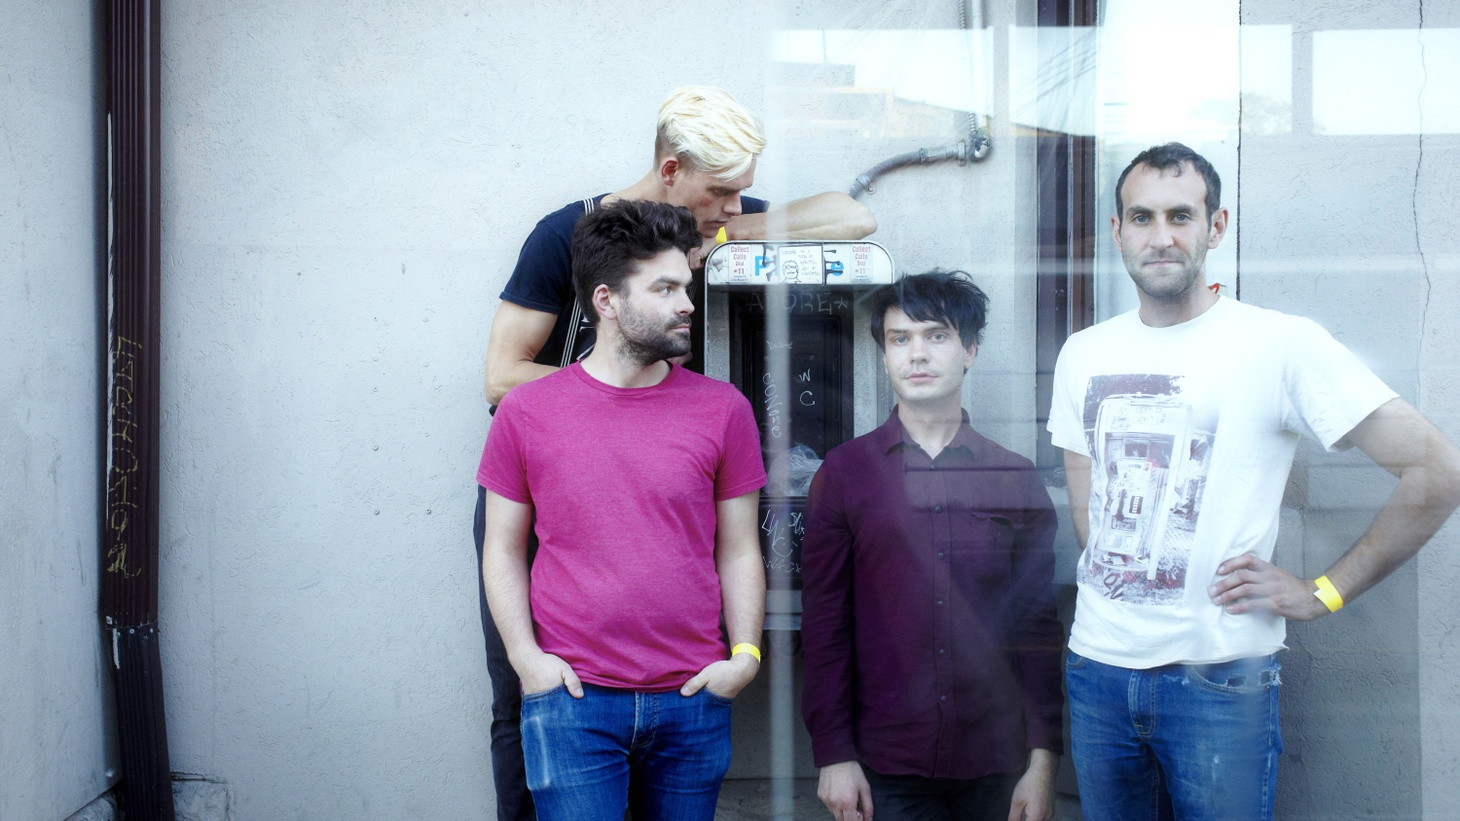 The debut album from Calgary's Viet Cong is a mash up of heavy yet strangely beautiful post-punk tunes.